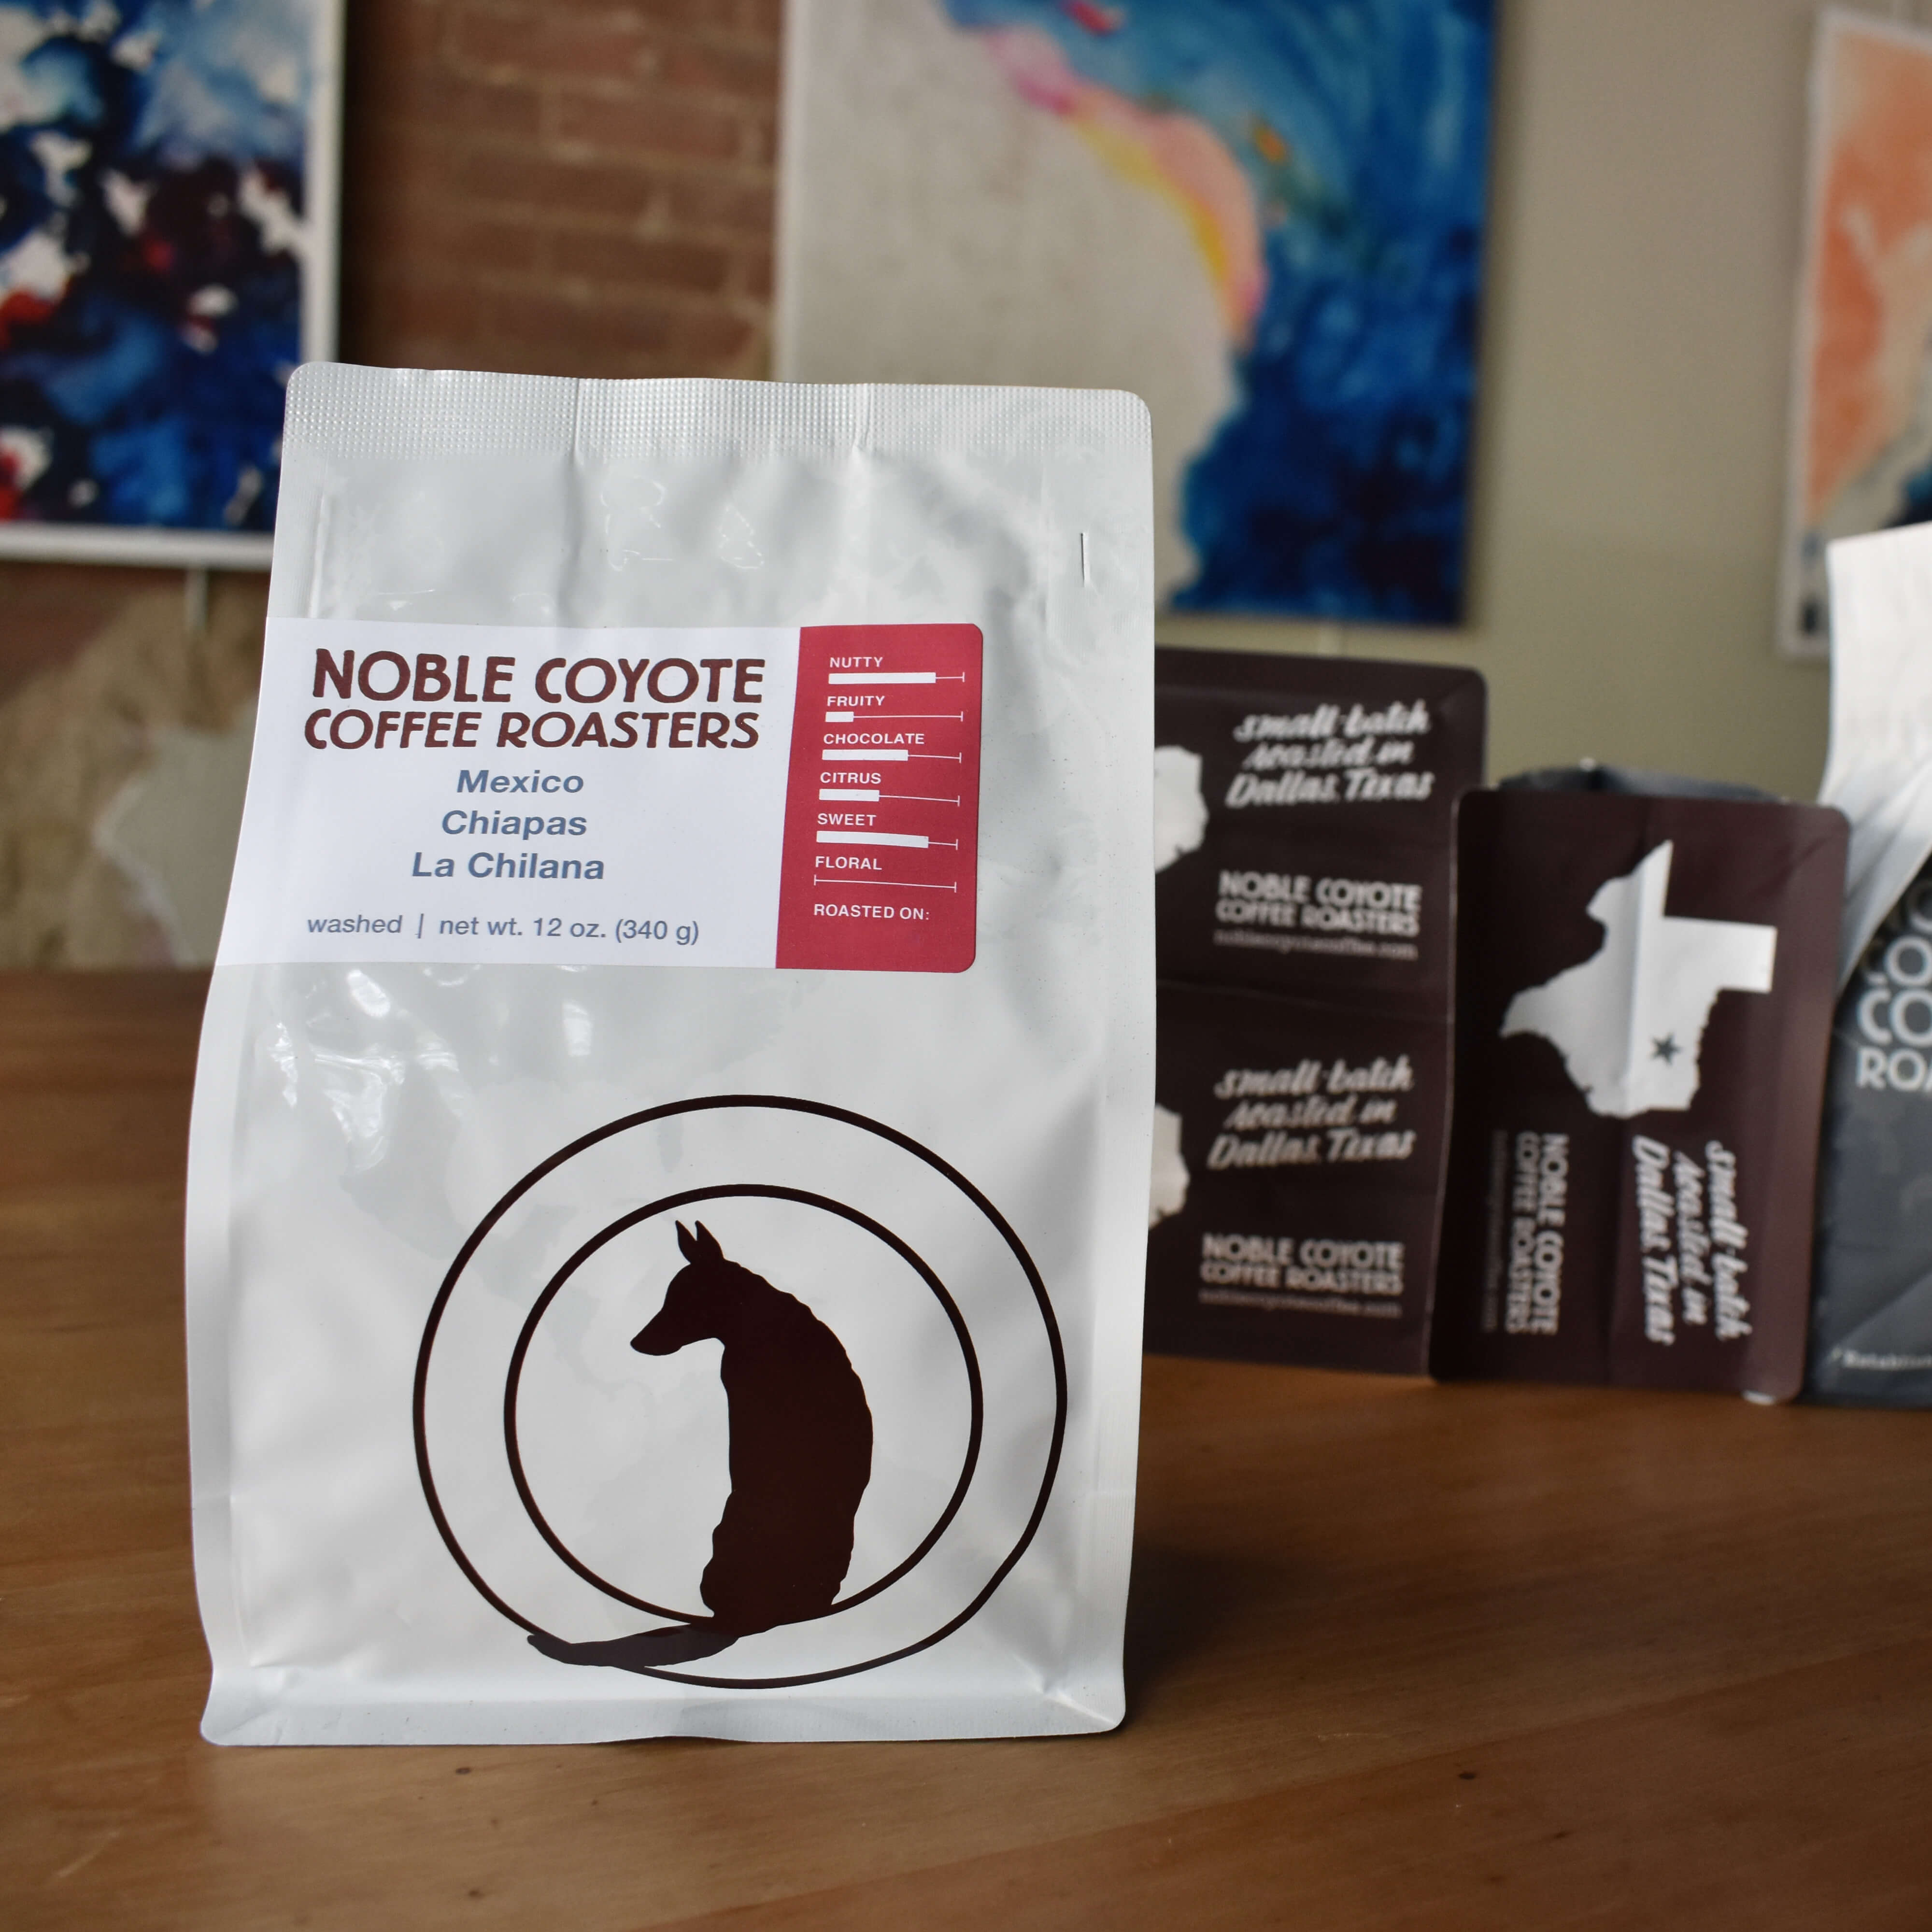 Mexico Chiapas La Chilana from Noble Coyote Coffee Roasters